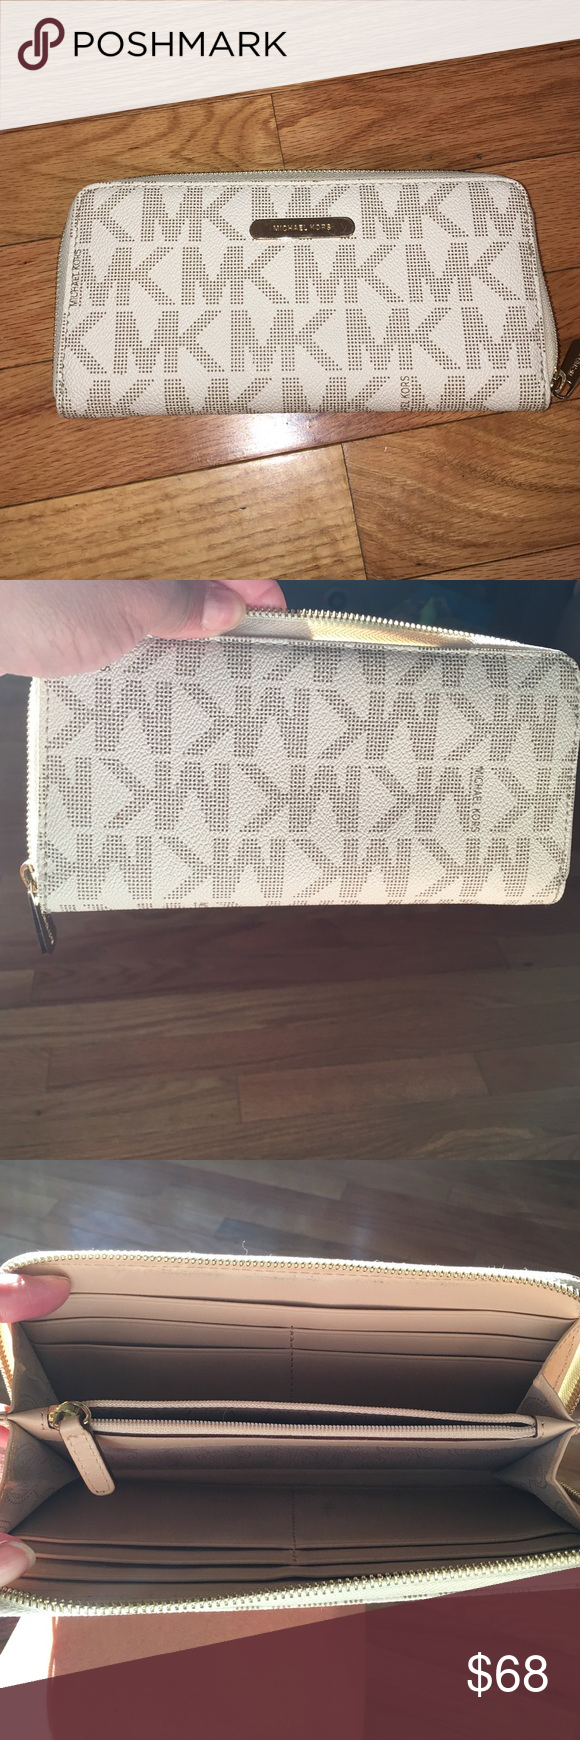 Wallet Wallet in excellent condition Michael Kors Other